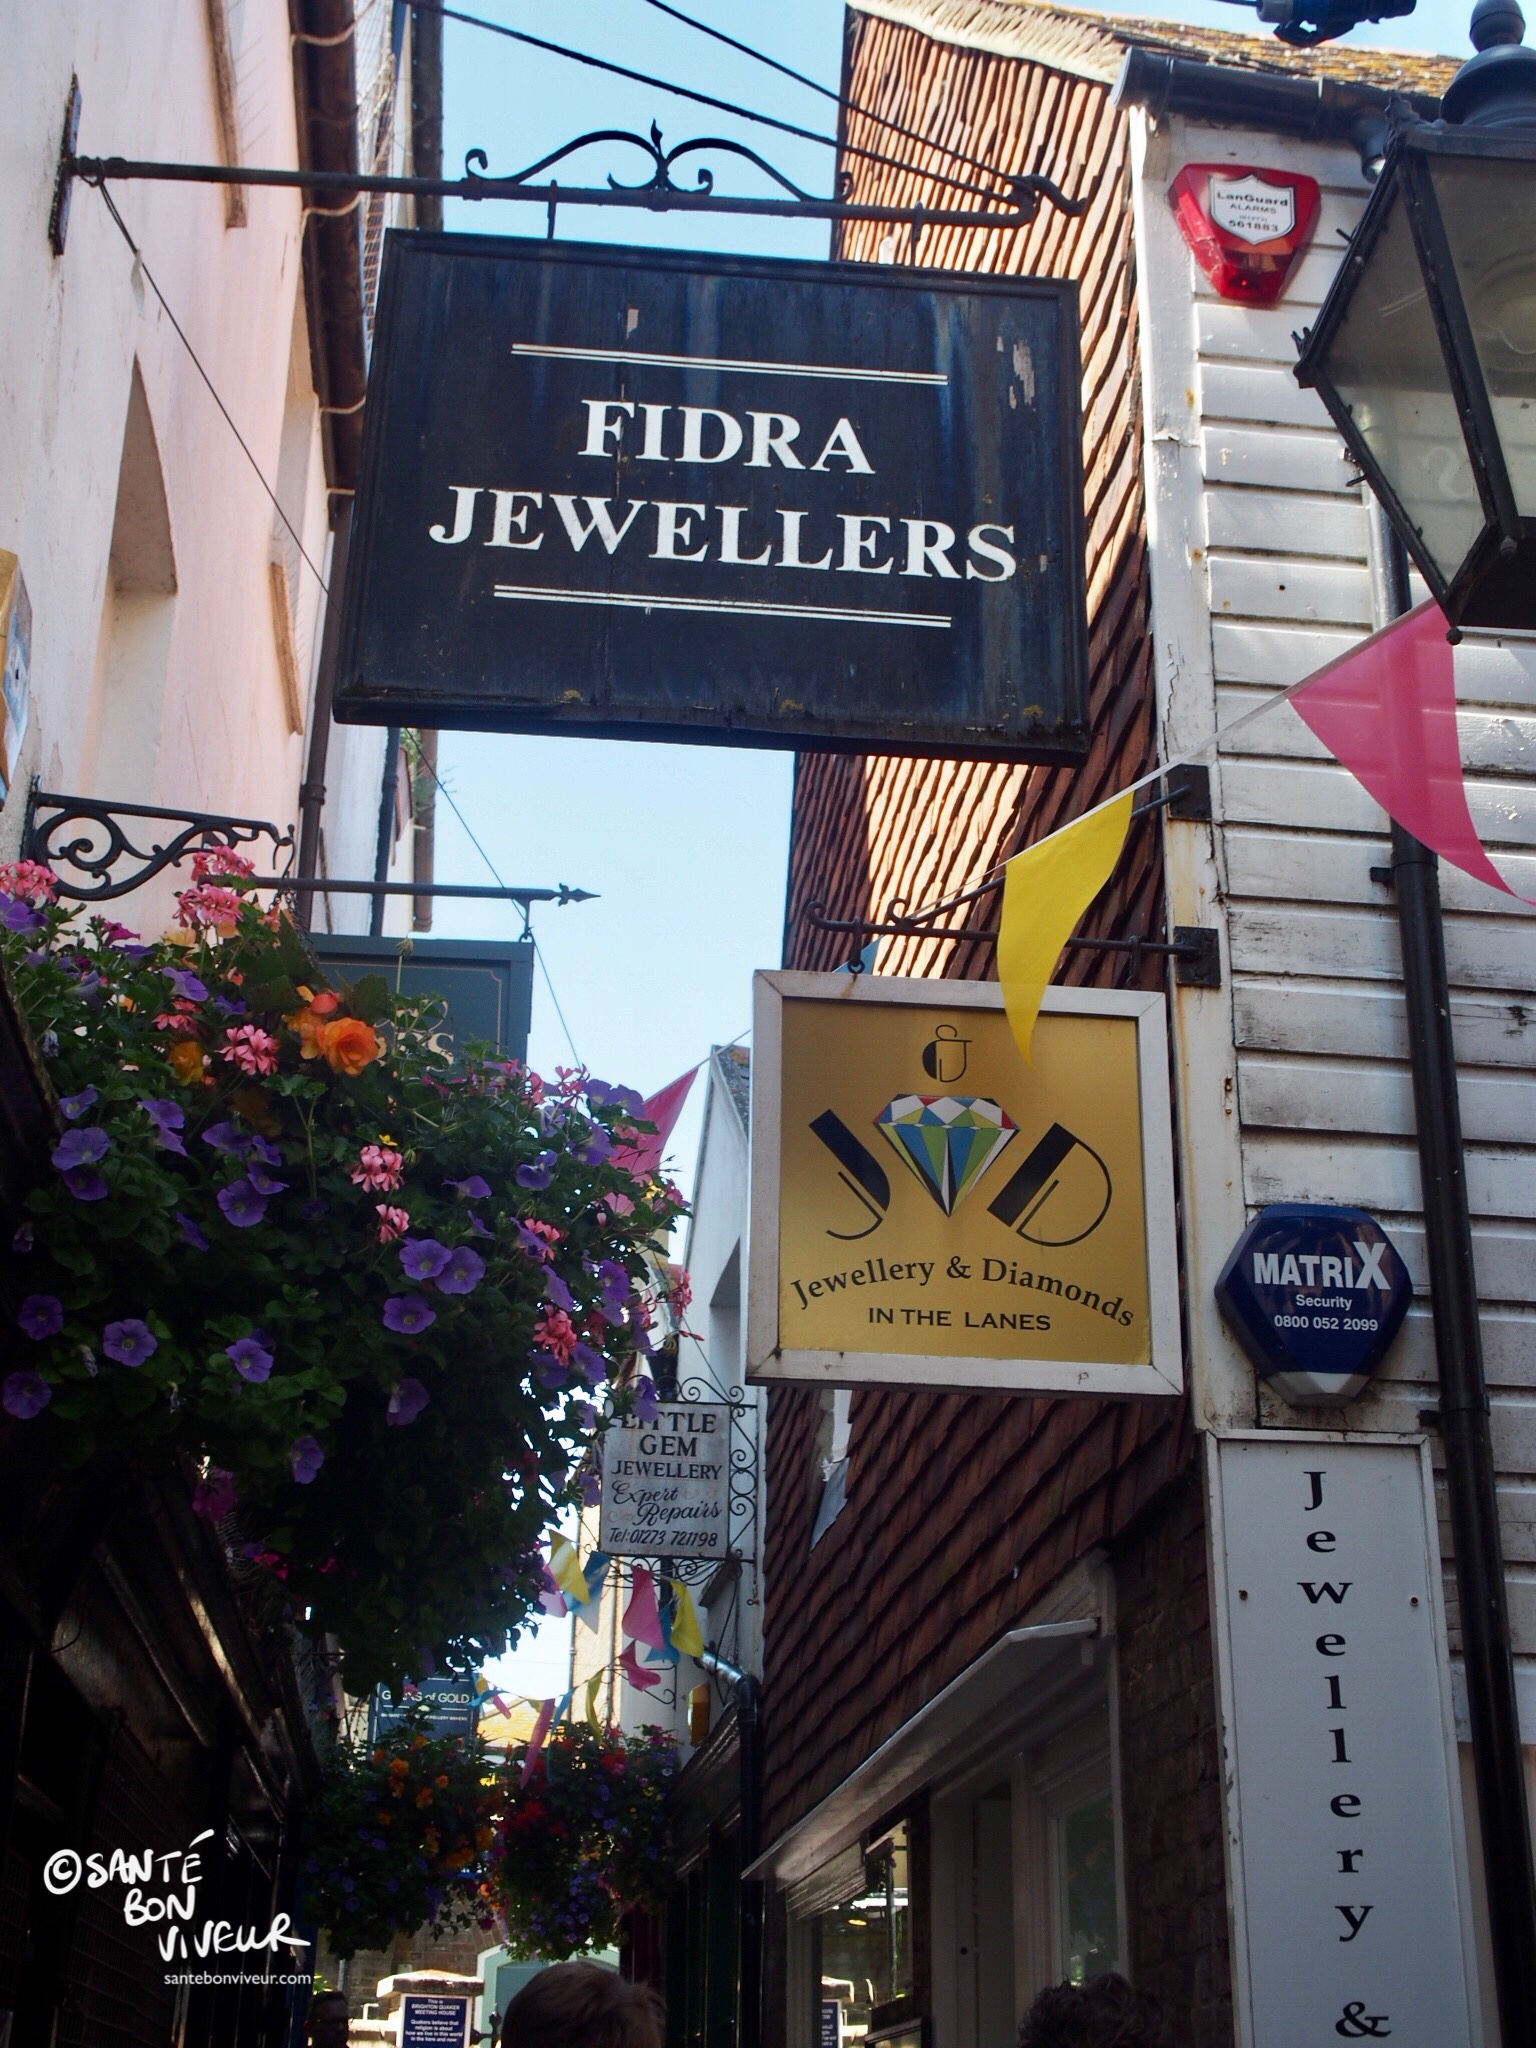 So many antique jewellers in The Lanes